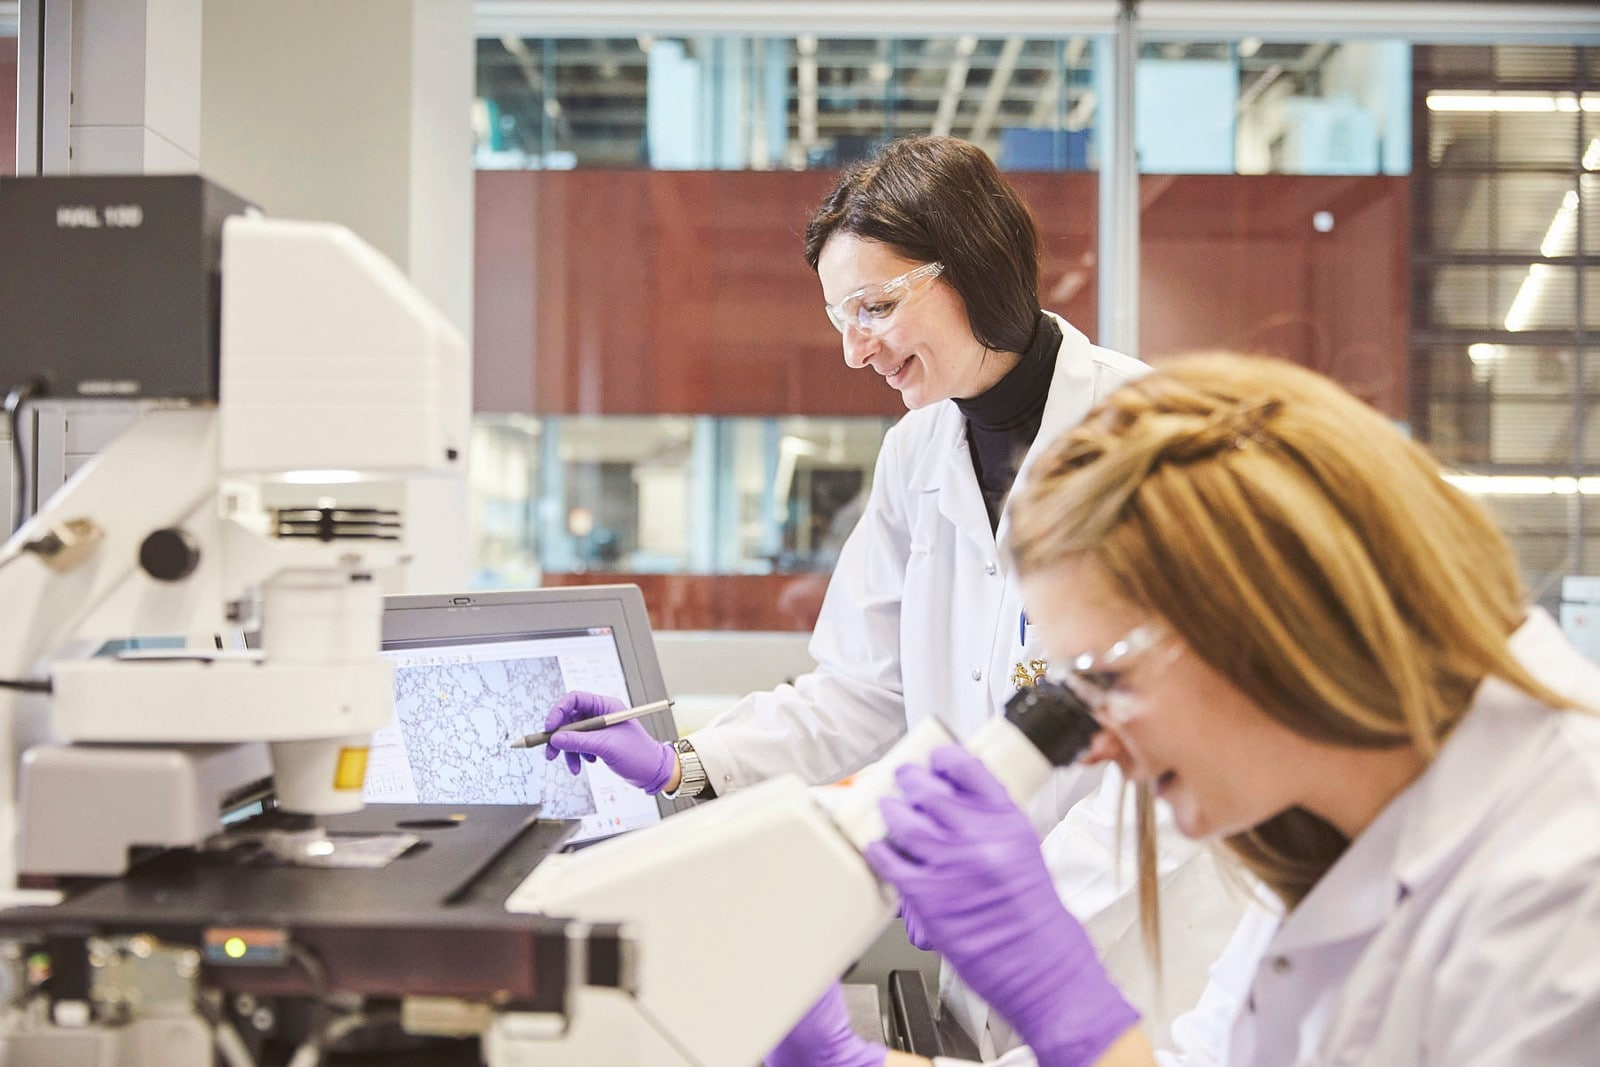 Two female researchers conducting scientific research